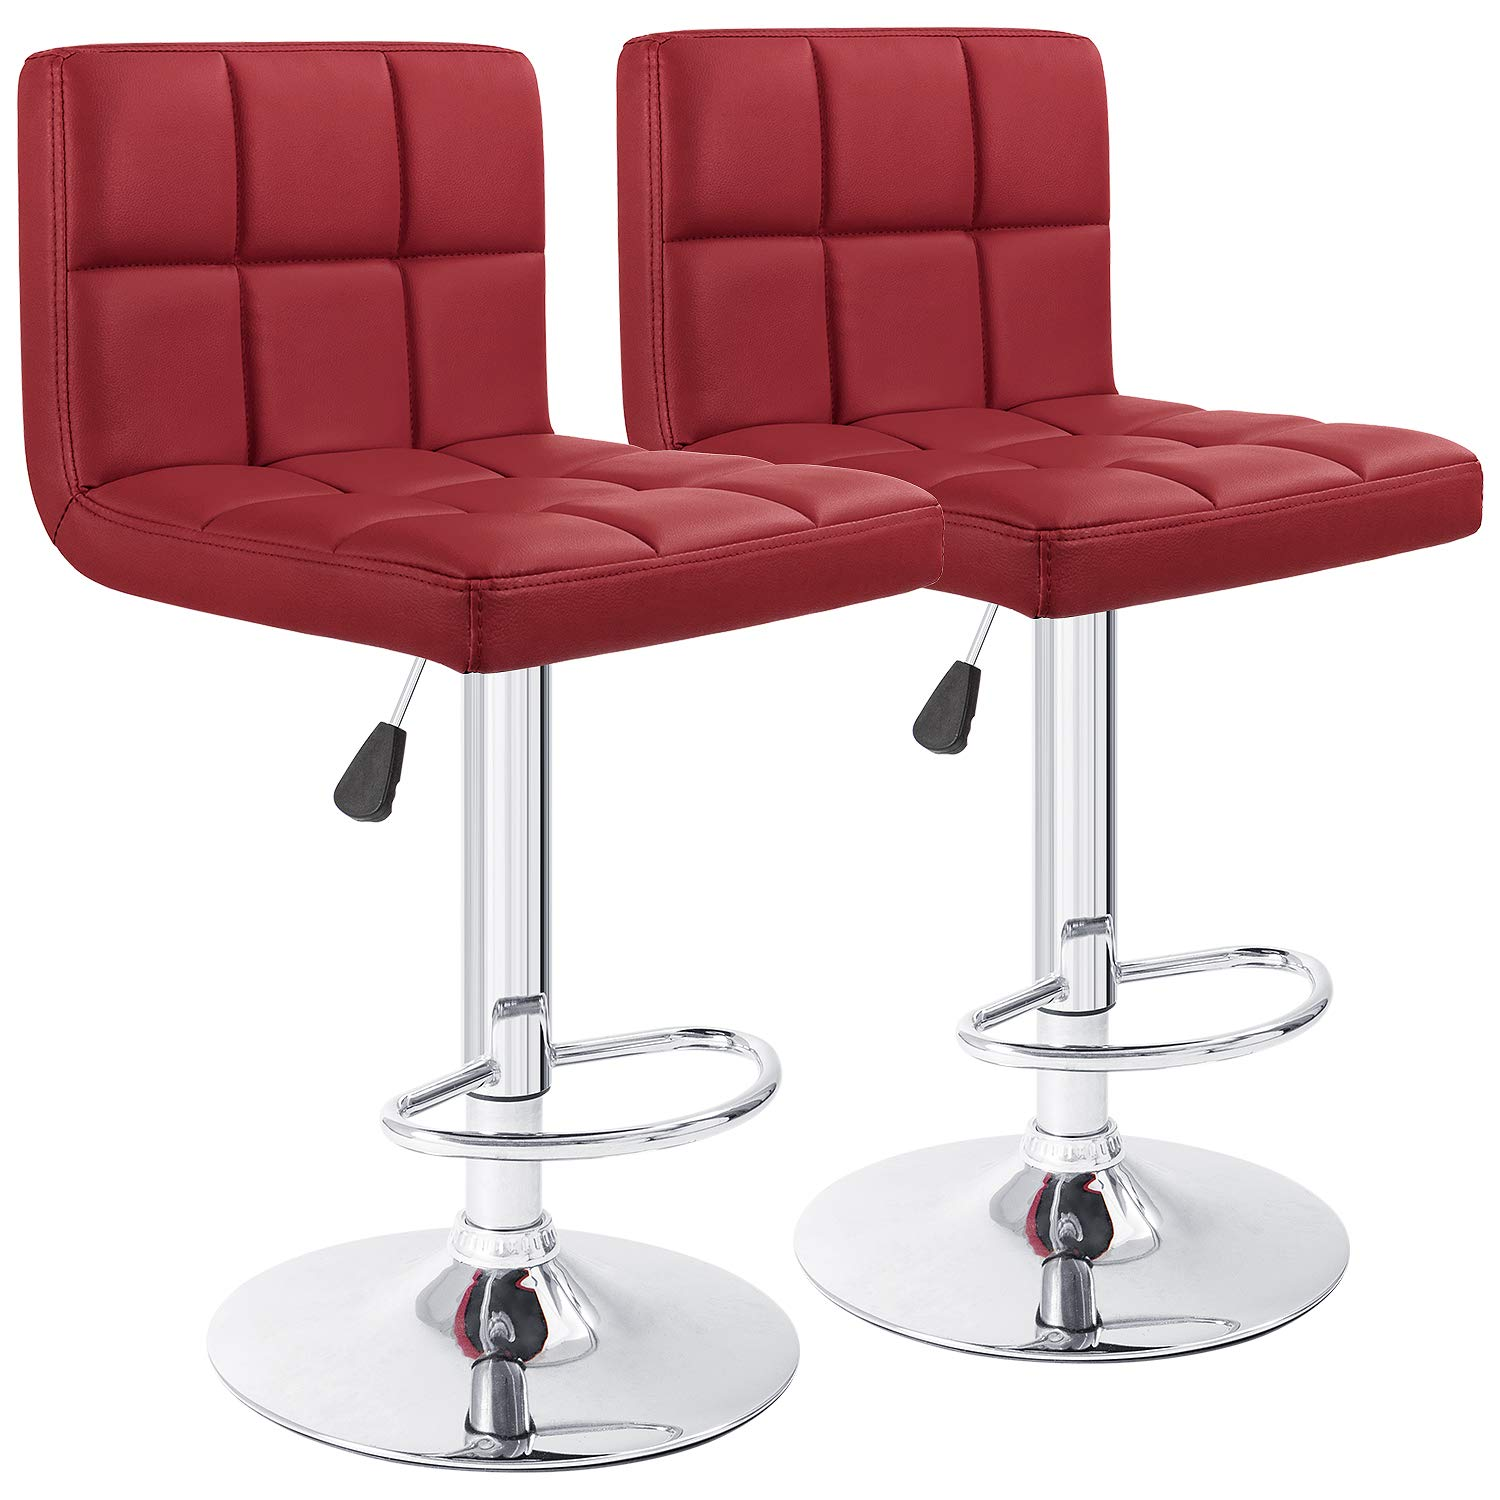 Furmax Bar Stools Modern Pu Leather Swivel Adjustable Hydraulic Bar Stool Square Counter Height Stool Set of 2 (Wine Red) by Furmax